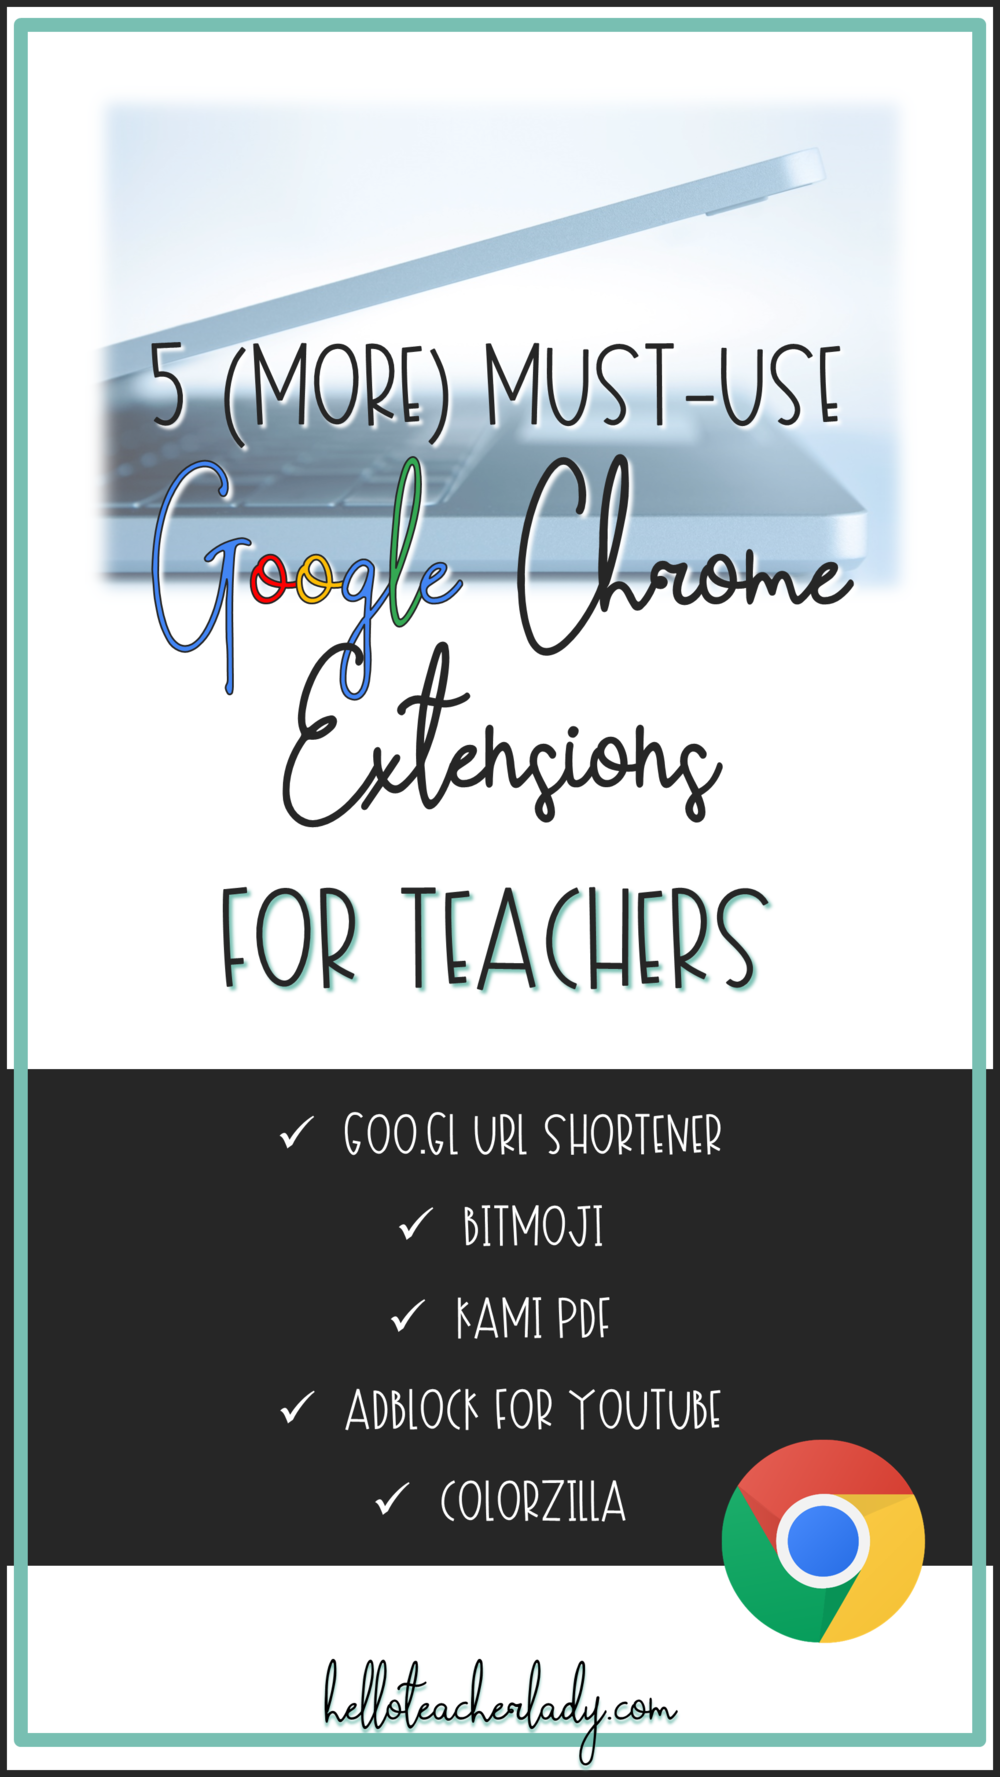 5 Must-Use Google Chrome Extensions for Teachers